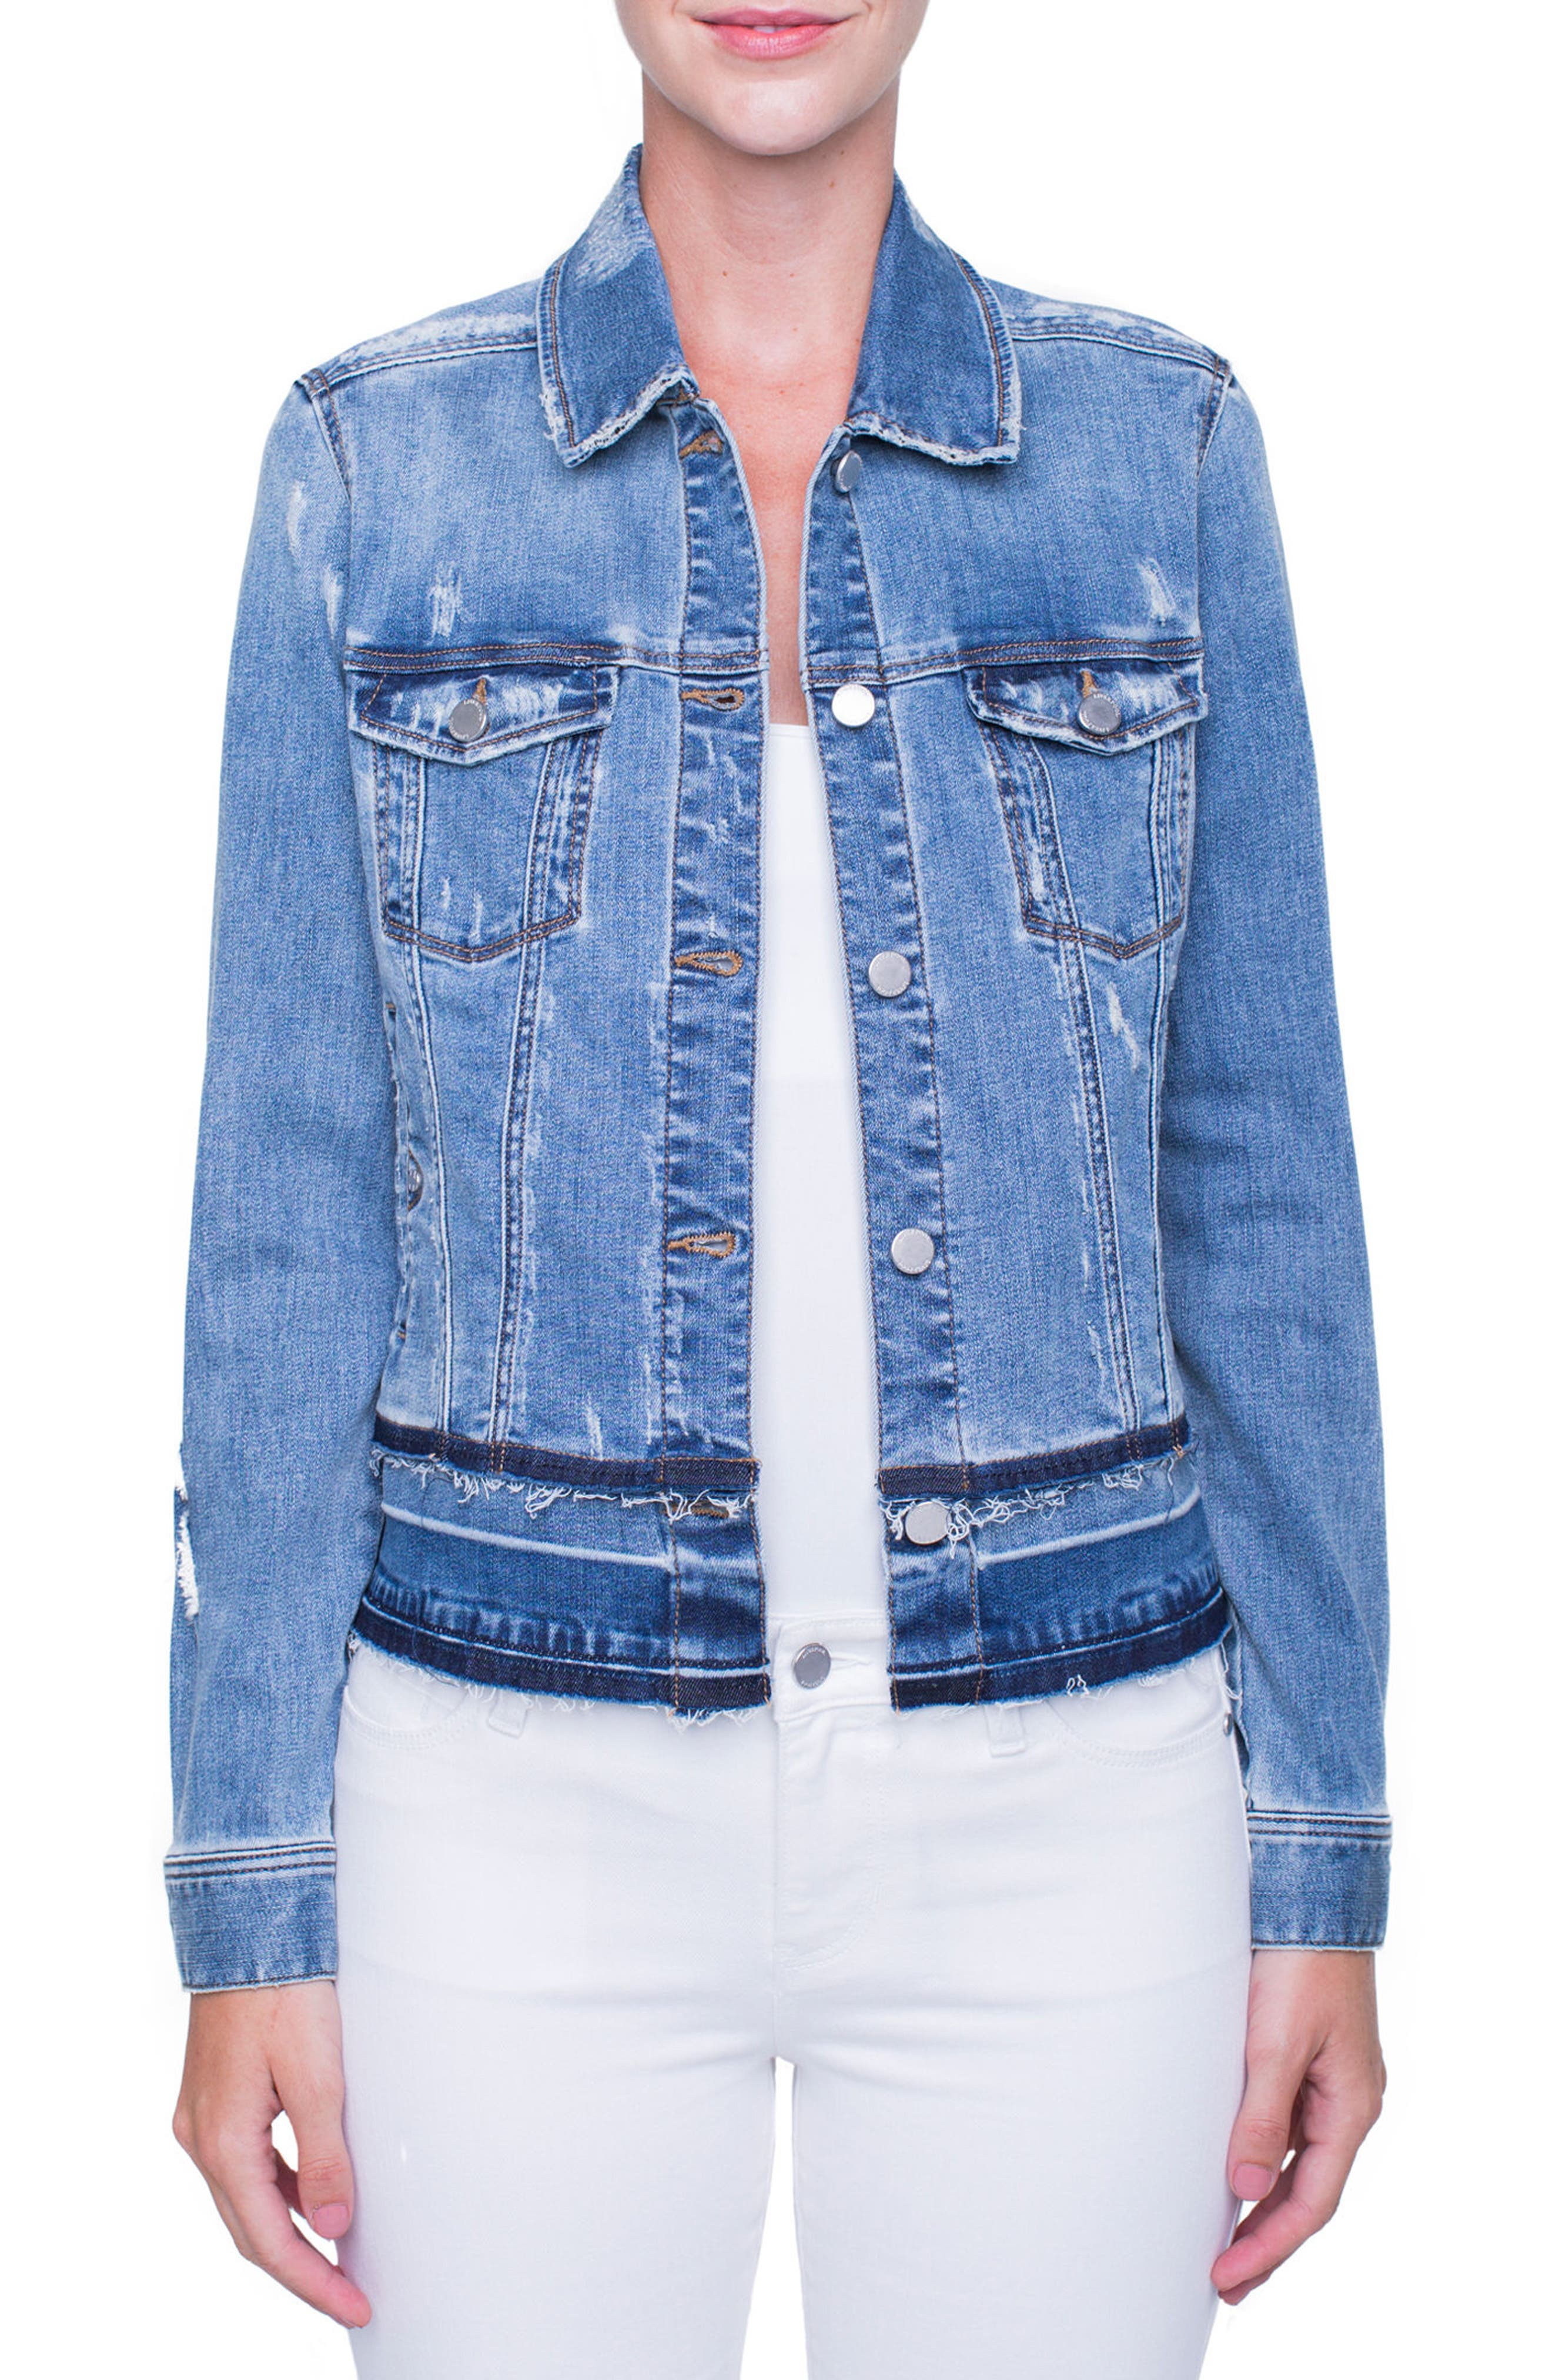 Alternate Image 1 Selected - Liverpool Jeans Company Tiered Hem Denim Jacket